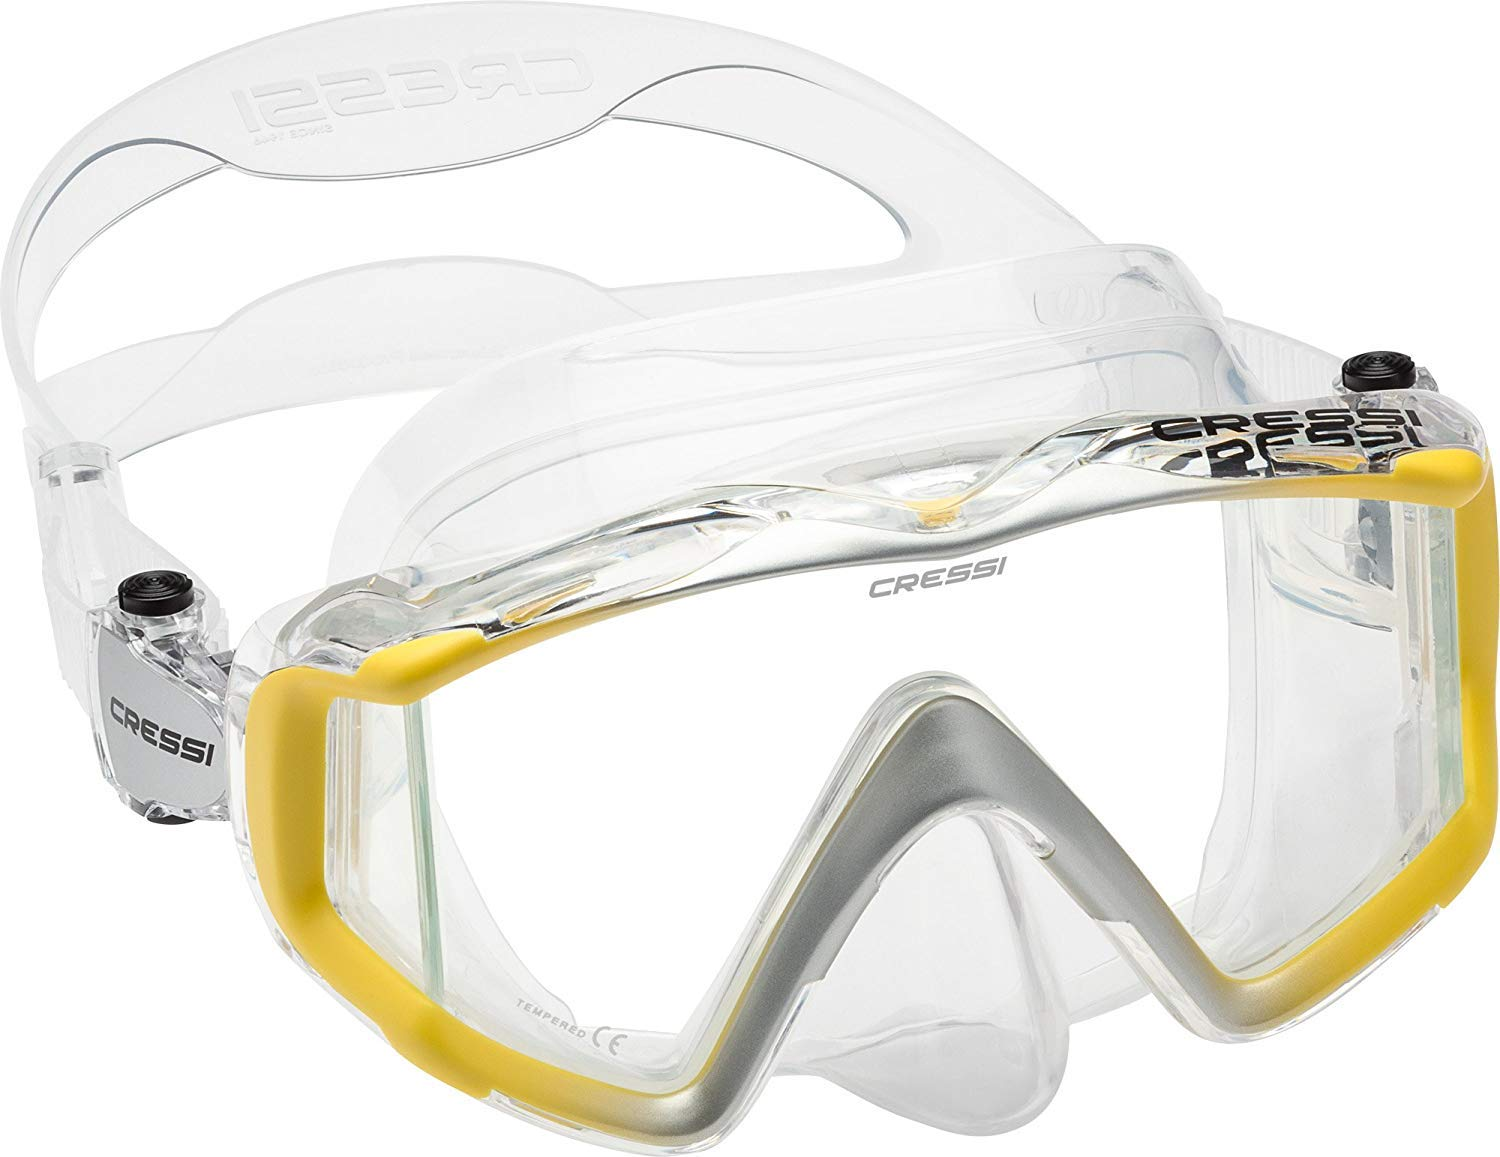 Cressi Liberty Triside Mask, Clear Yellow Silver by Cressi